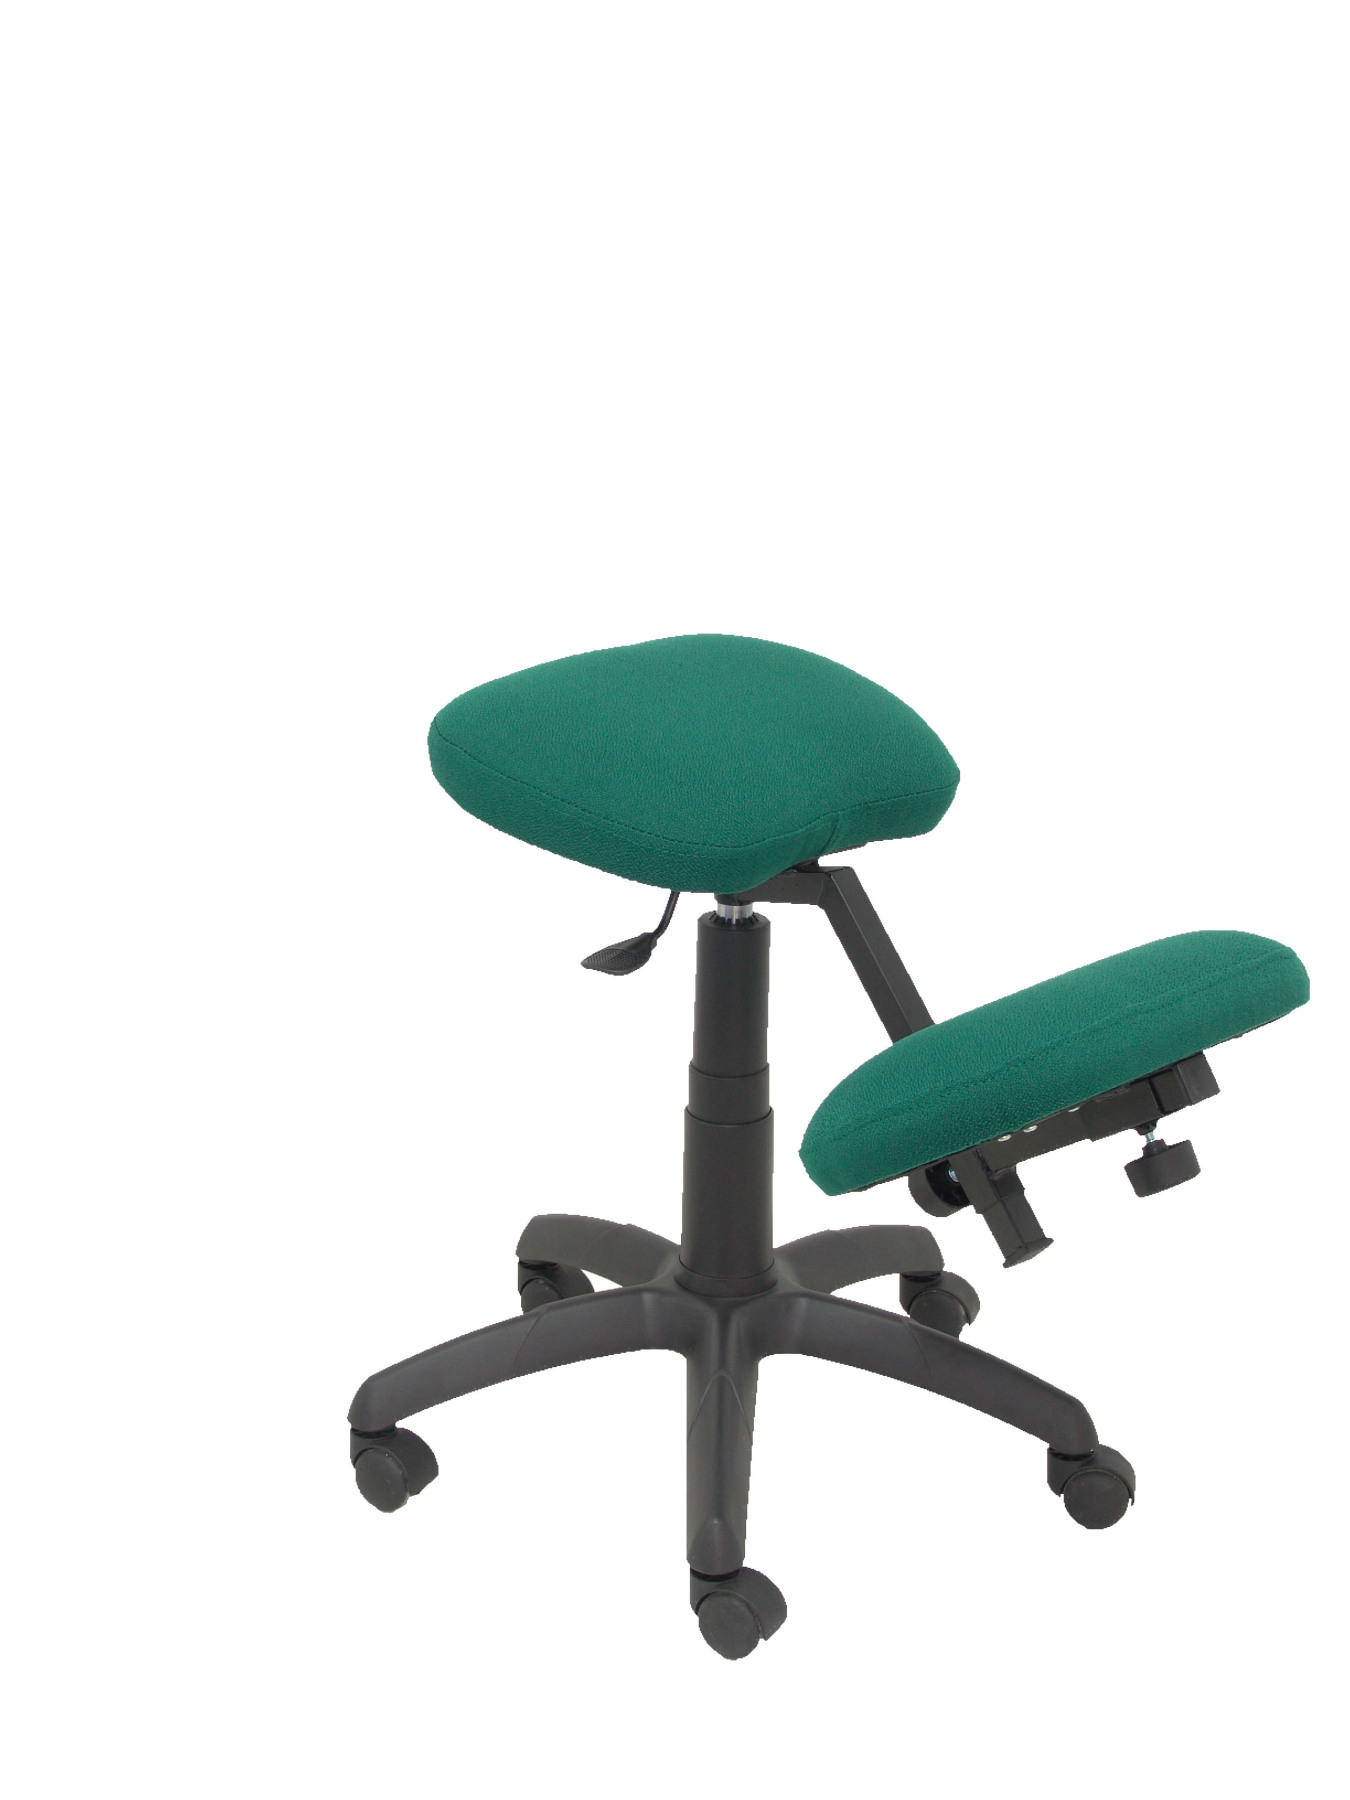 Office's Stool Ergonomic Swivel And Dimmable In High Altitude Up Seat Upholstered In BALI Tissue Green Color (KNEE